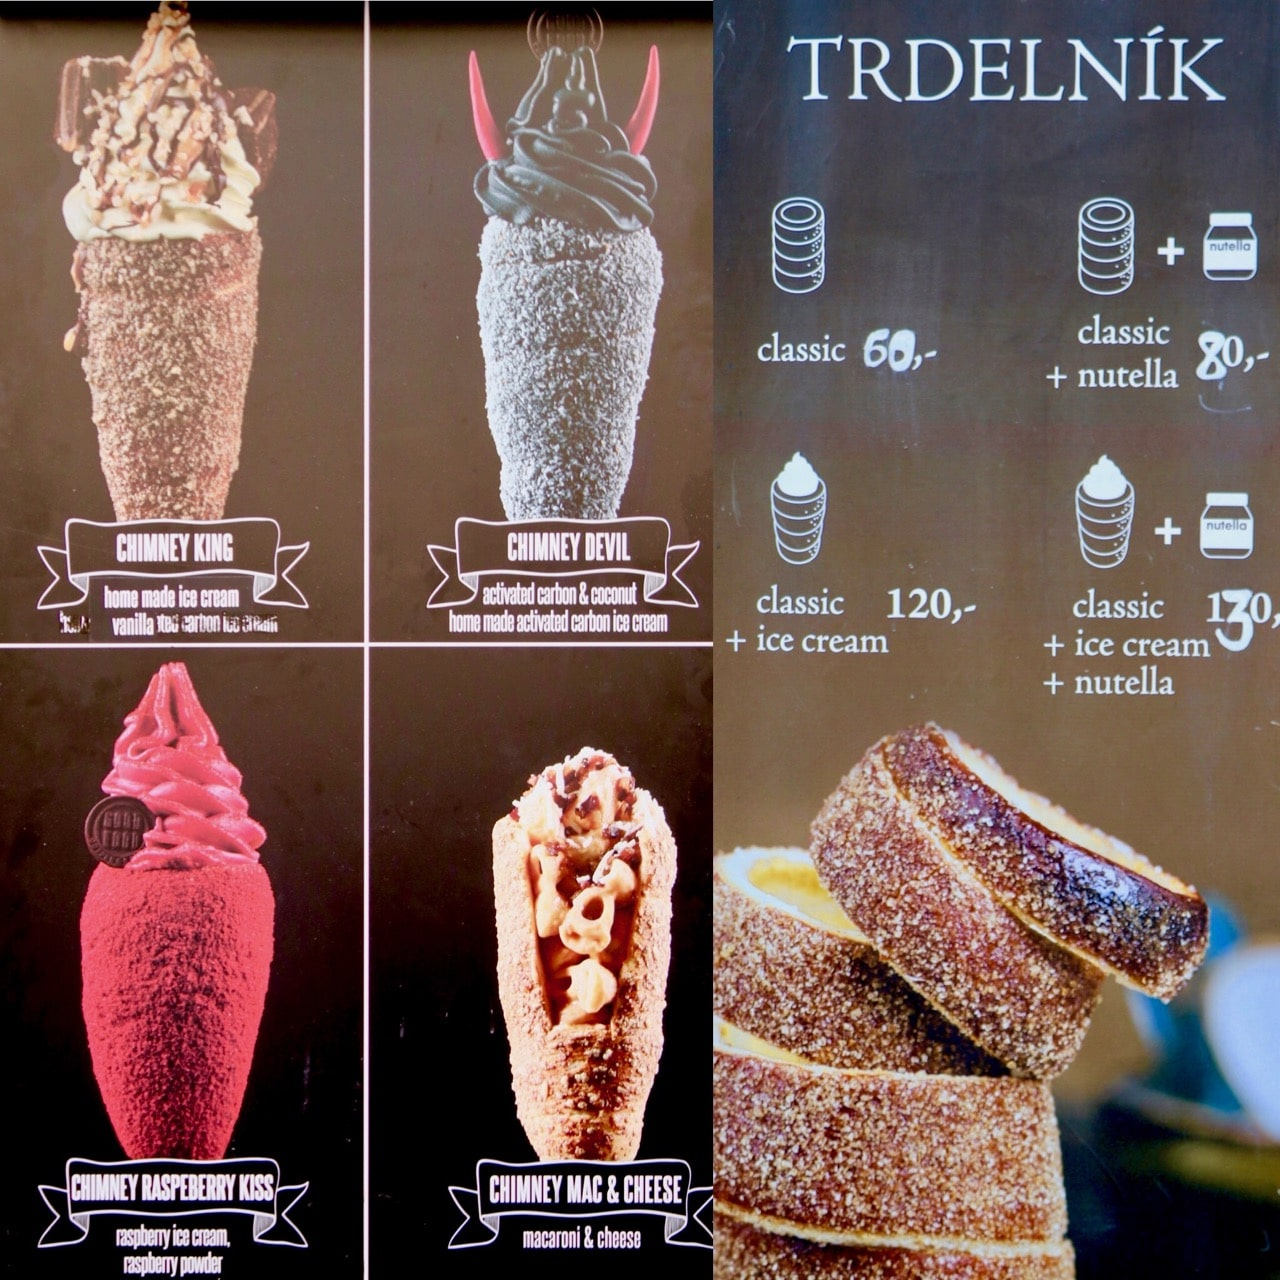 Prague Trdelnik Shops - Eat And Drink In Prague.jpg